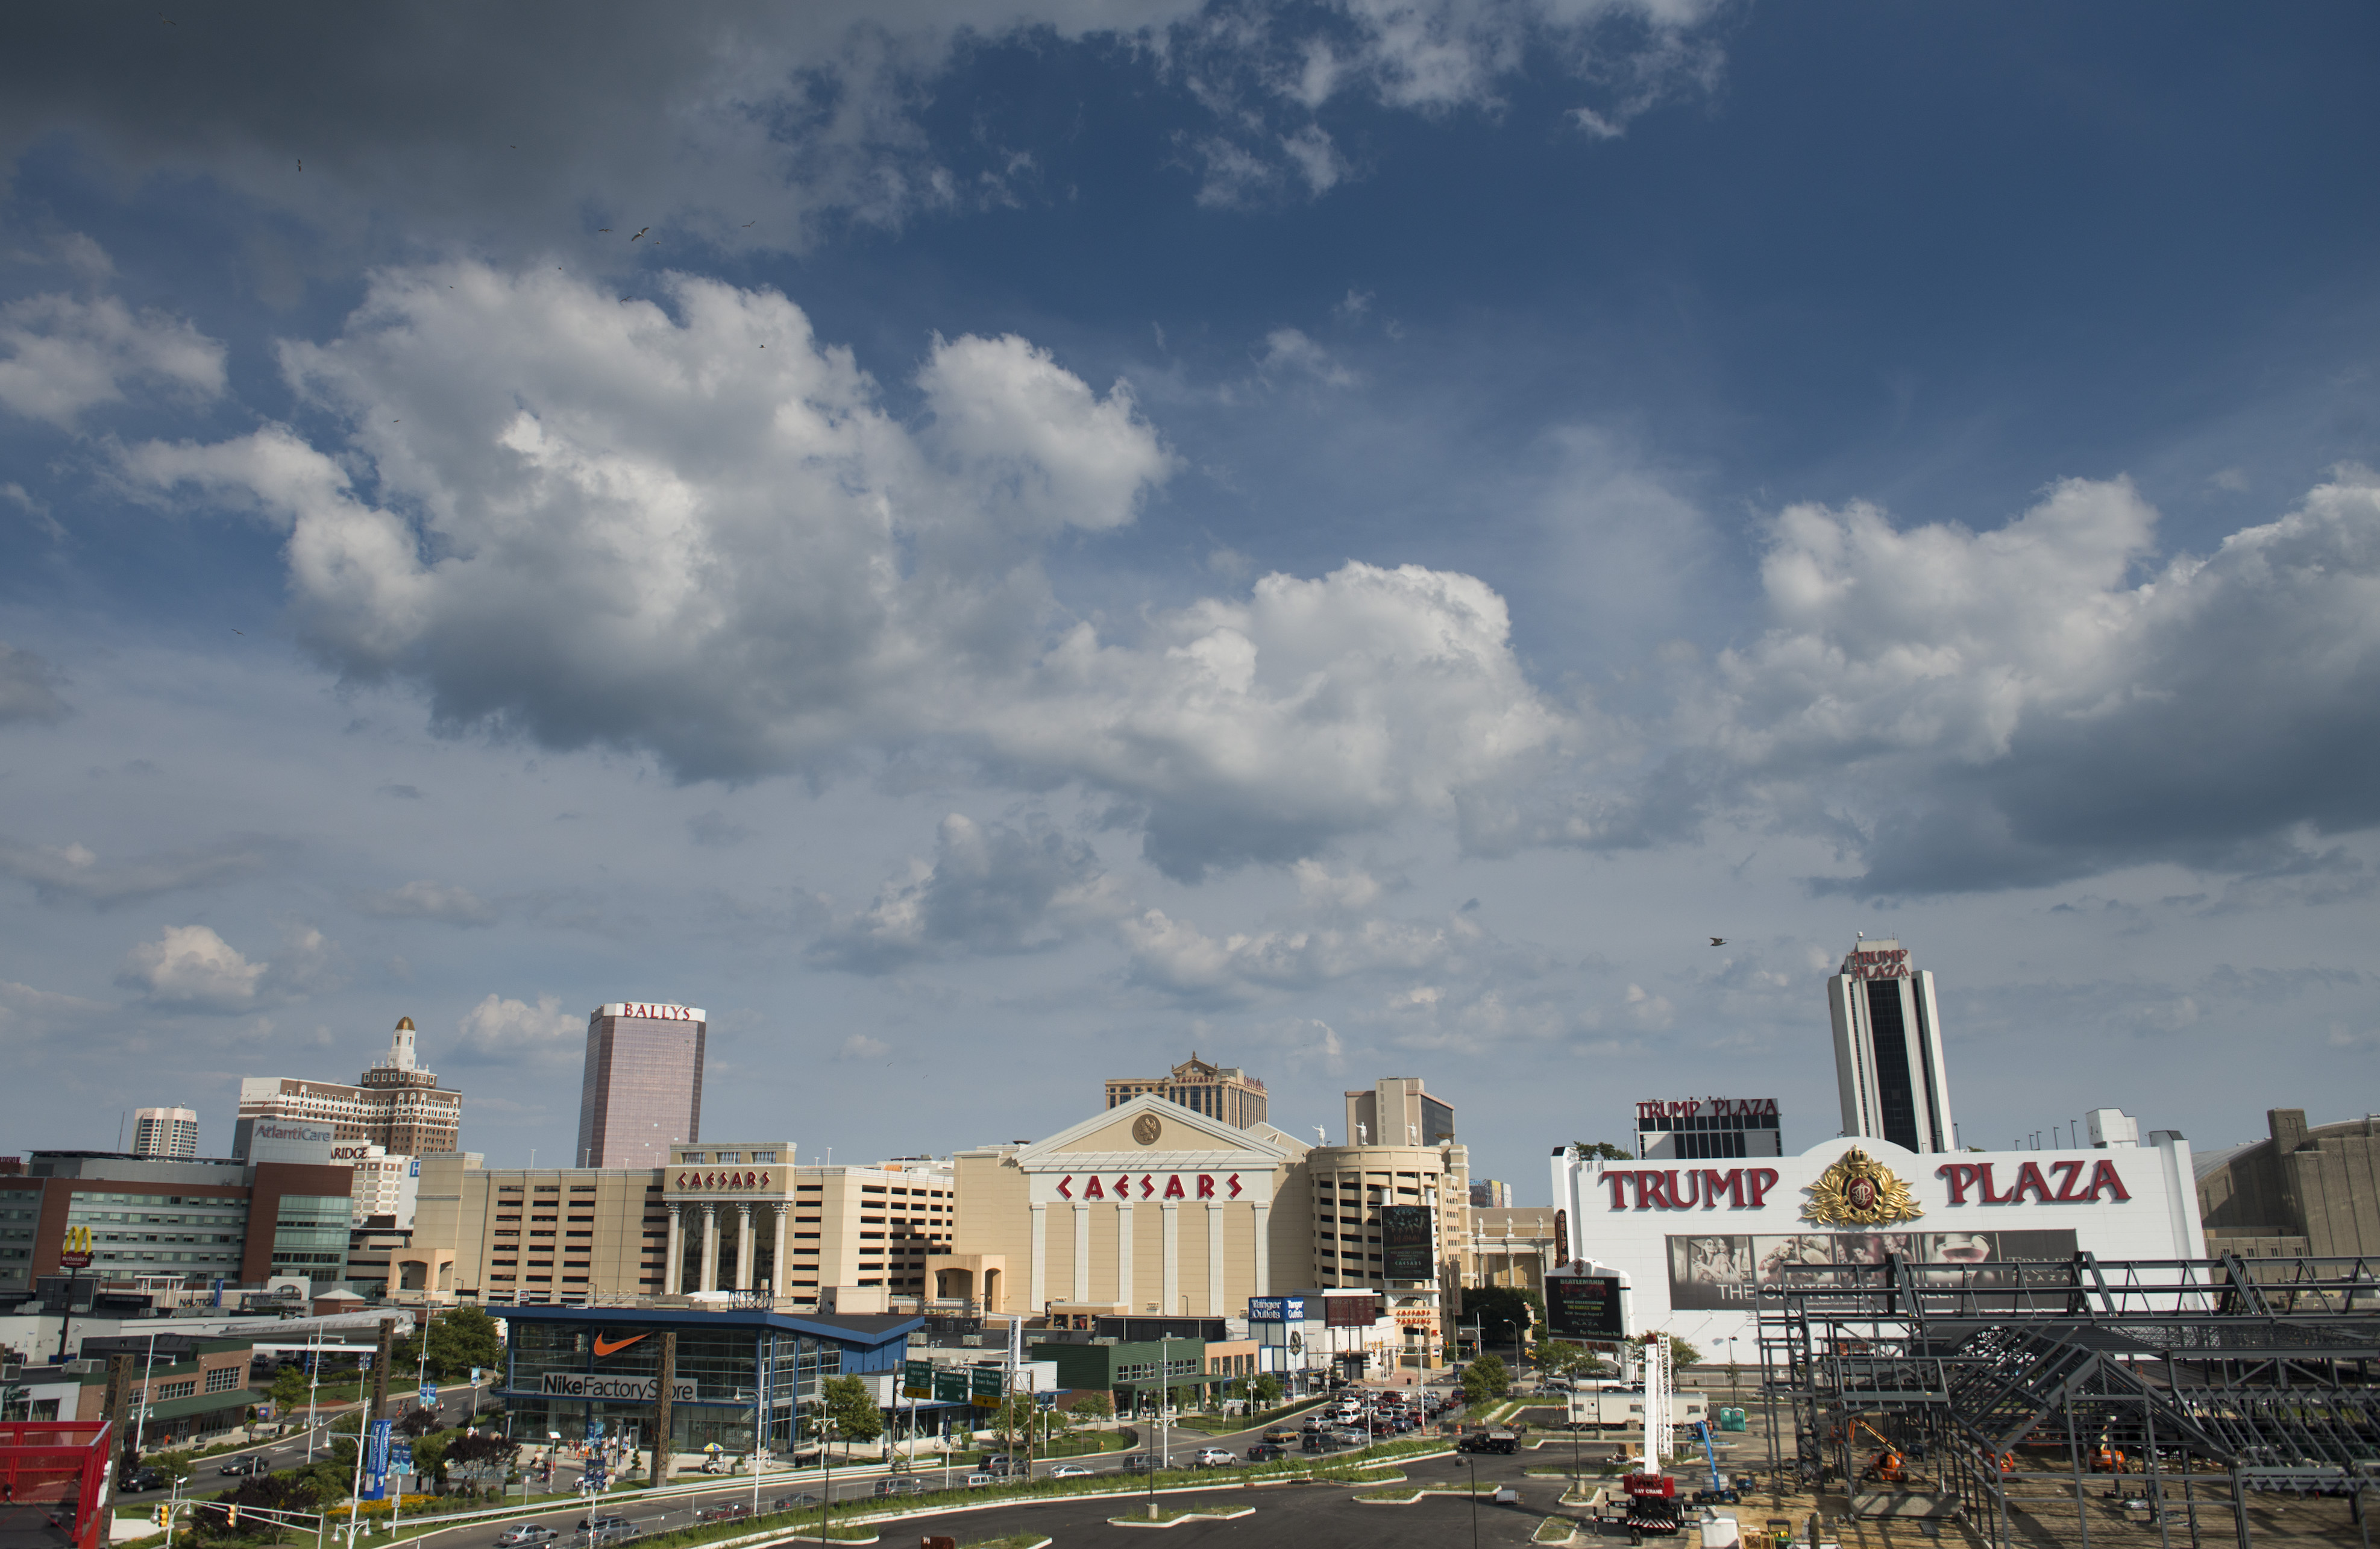 Caesars Entertainment, Atlantic City Hotel and Casino, and the Trump Plaza Hotel and Casino stand in Atlantic City, New Jersey, U.S., on Thursday, July 17, 2014.